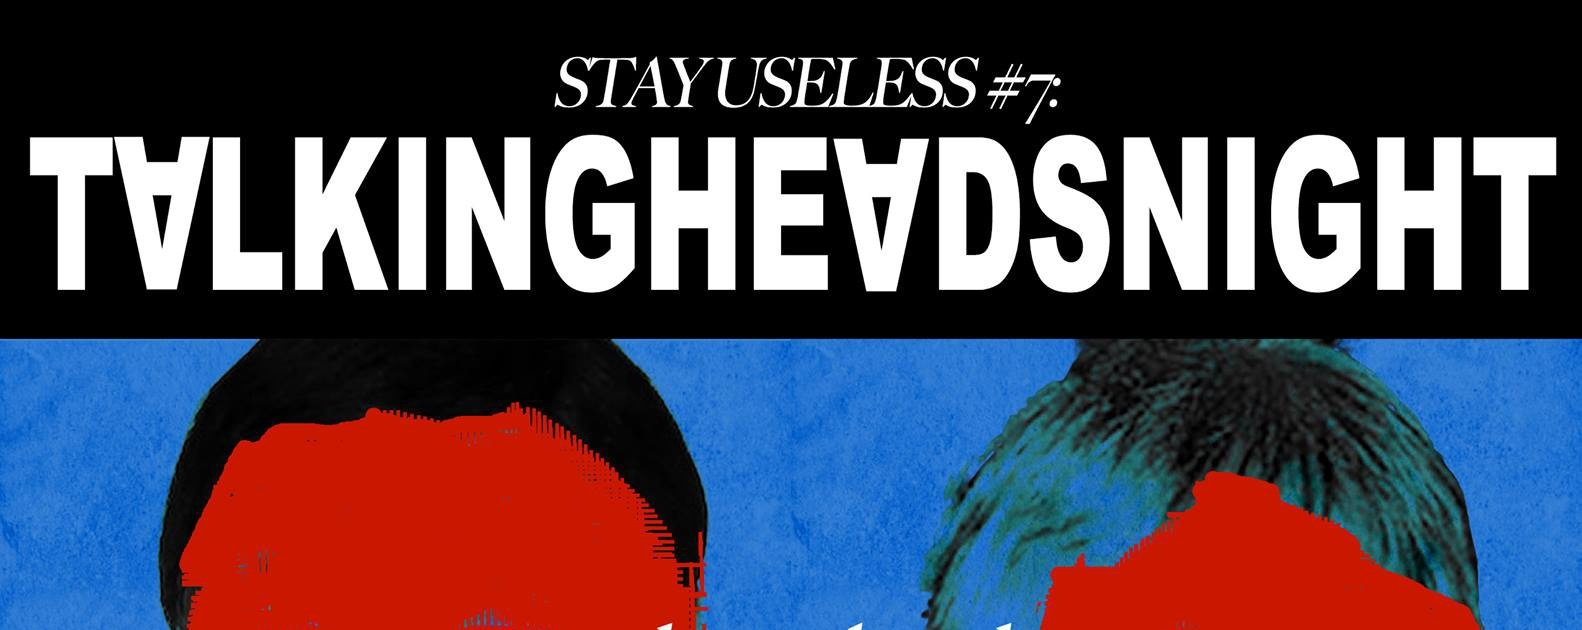 Talking Heads Night: Same As It Ever Was